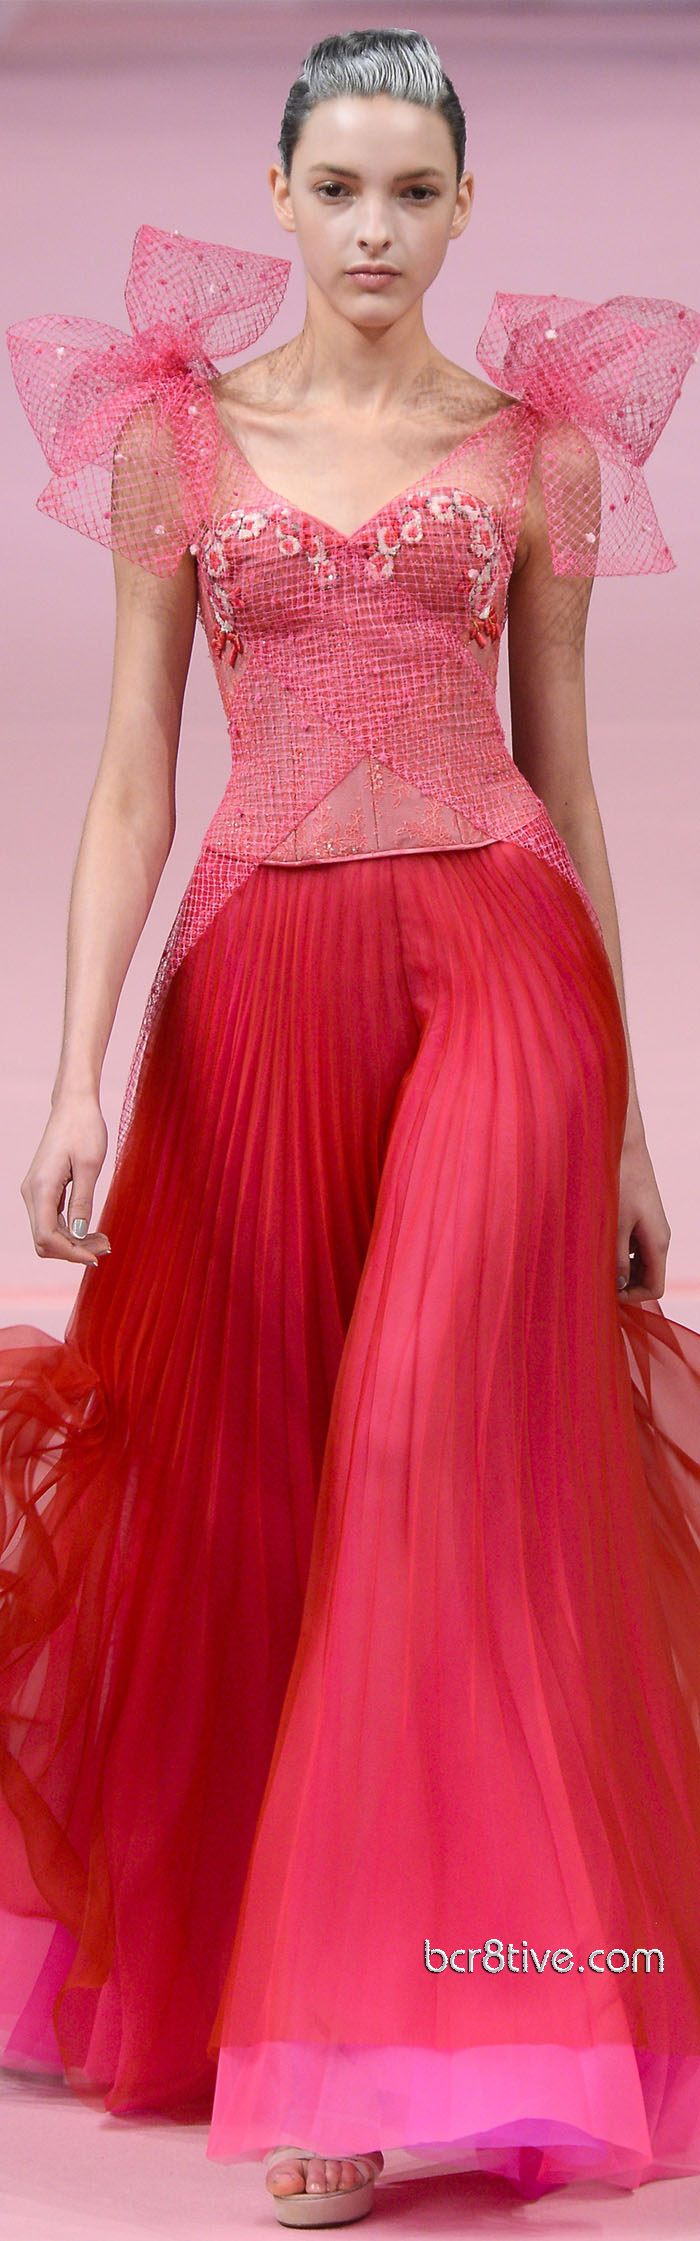 Alexis Mabille Spring Summer 2013 Haute Couture